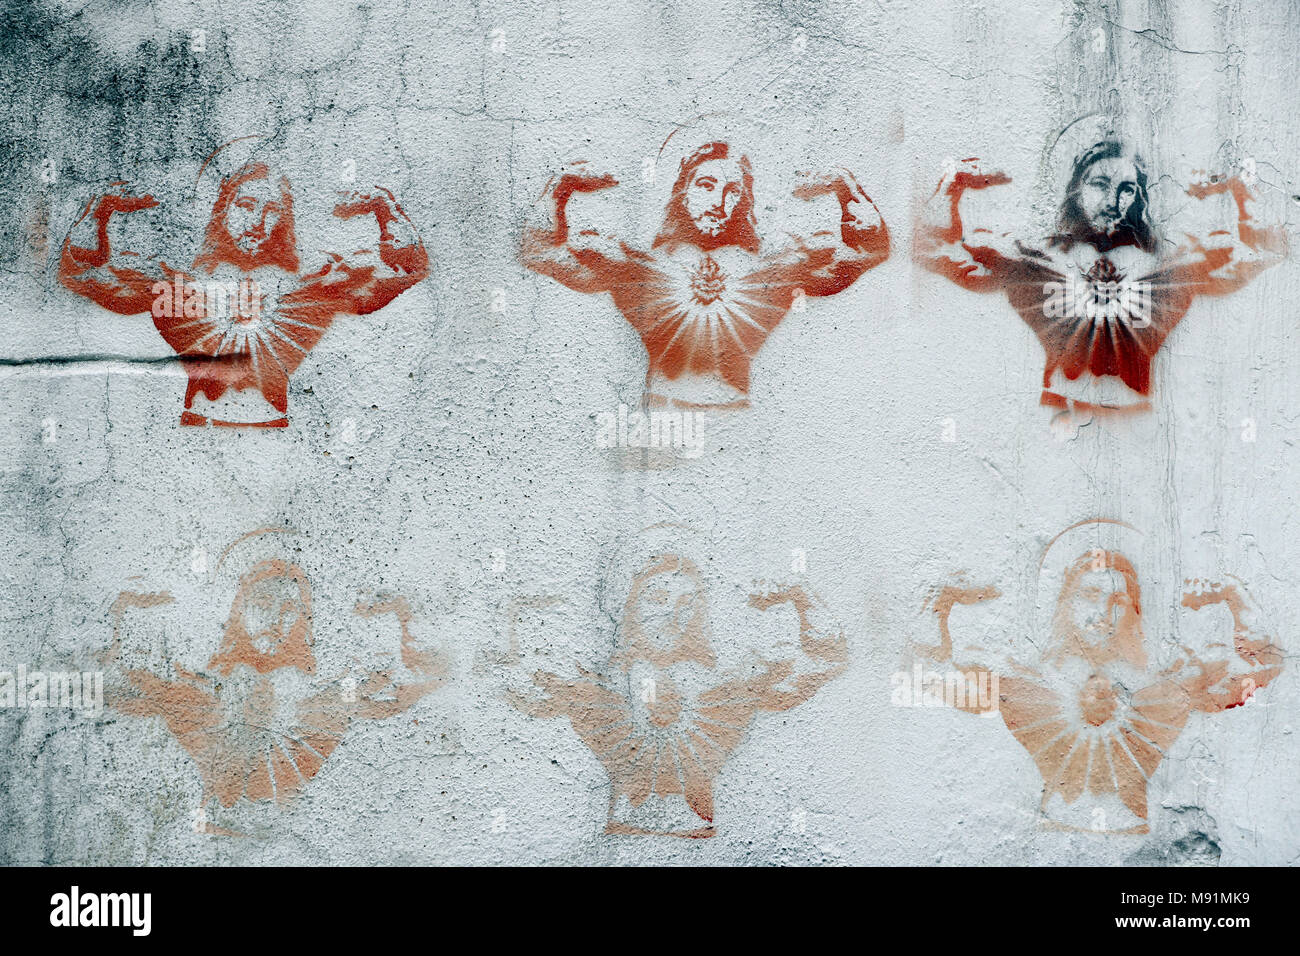 Stenciled image of Jesus Christ on a wall. Caricature.  Hanoi. Vietnam. - Stock Image